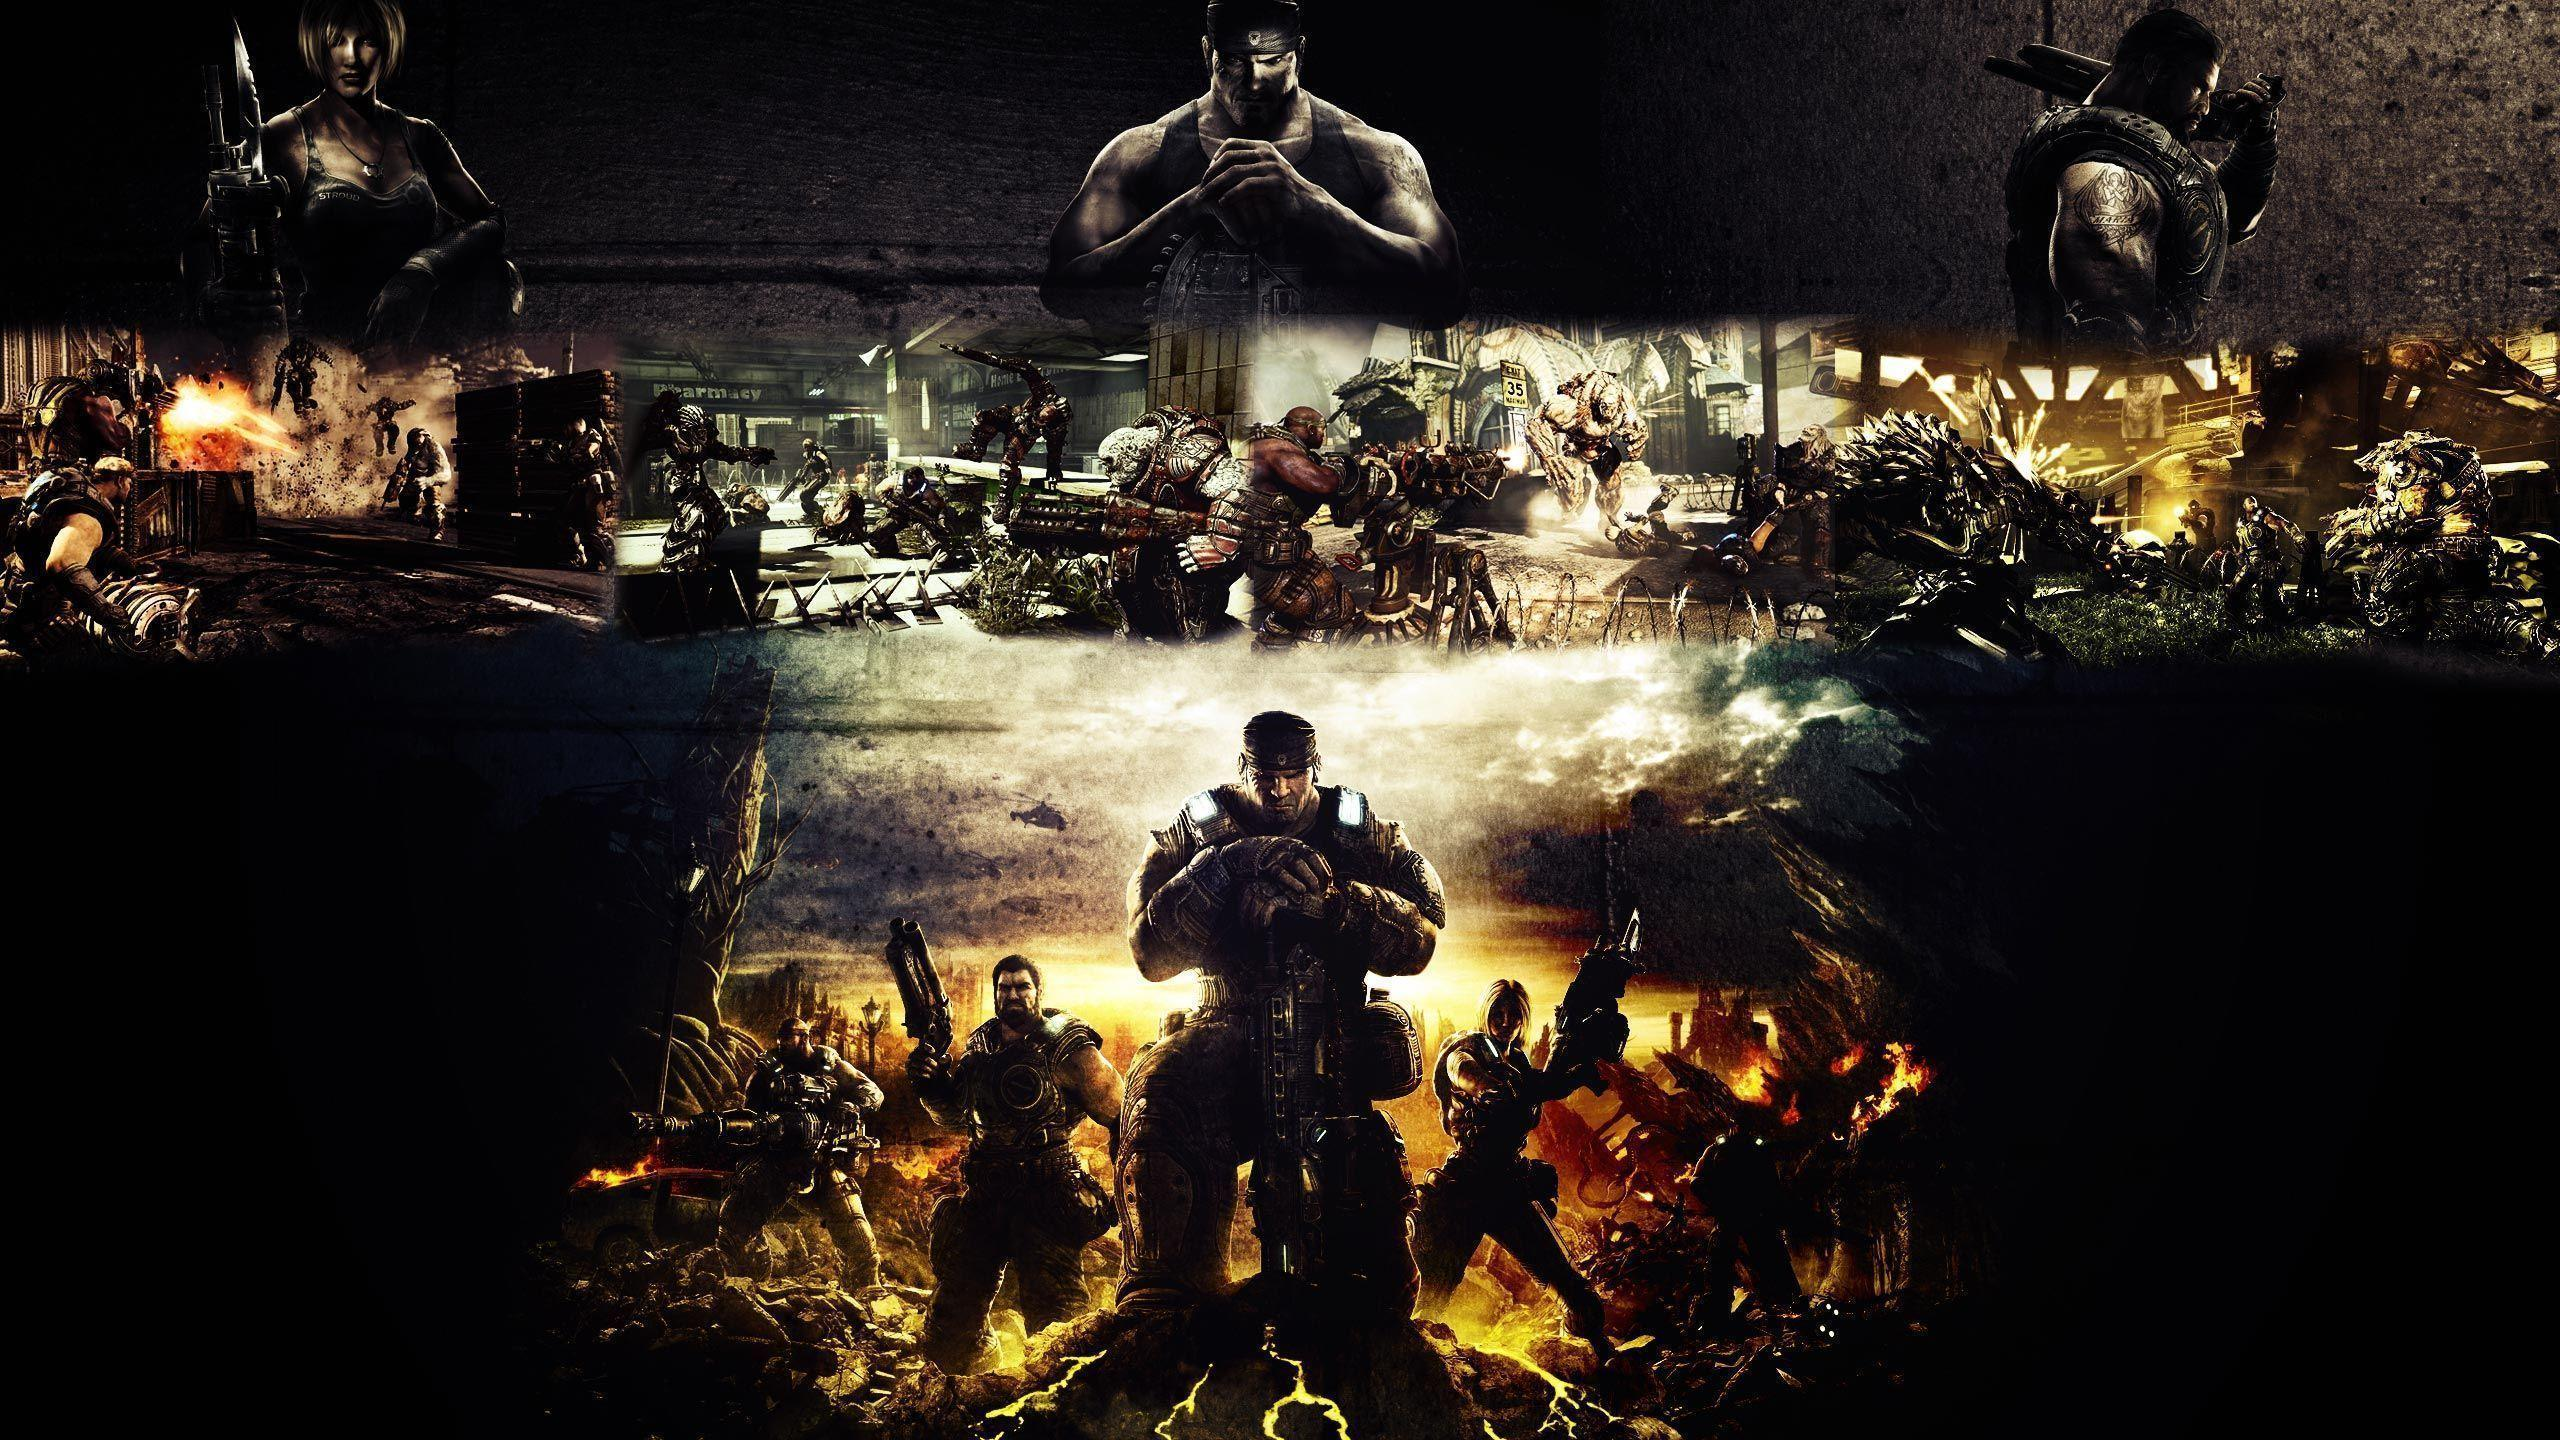 Gears Of War 3 Wallpapers: Gears Of War 3 Wallpapers HD